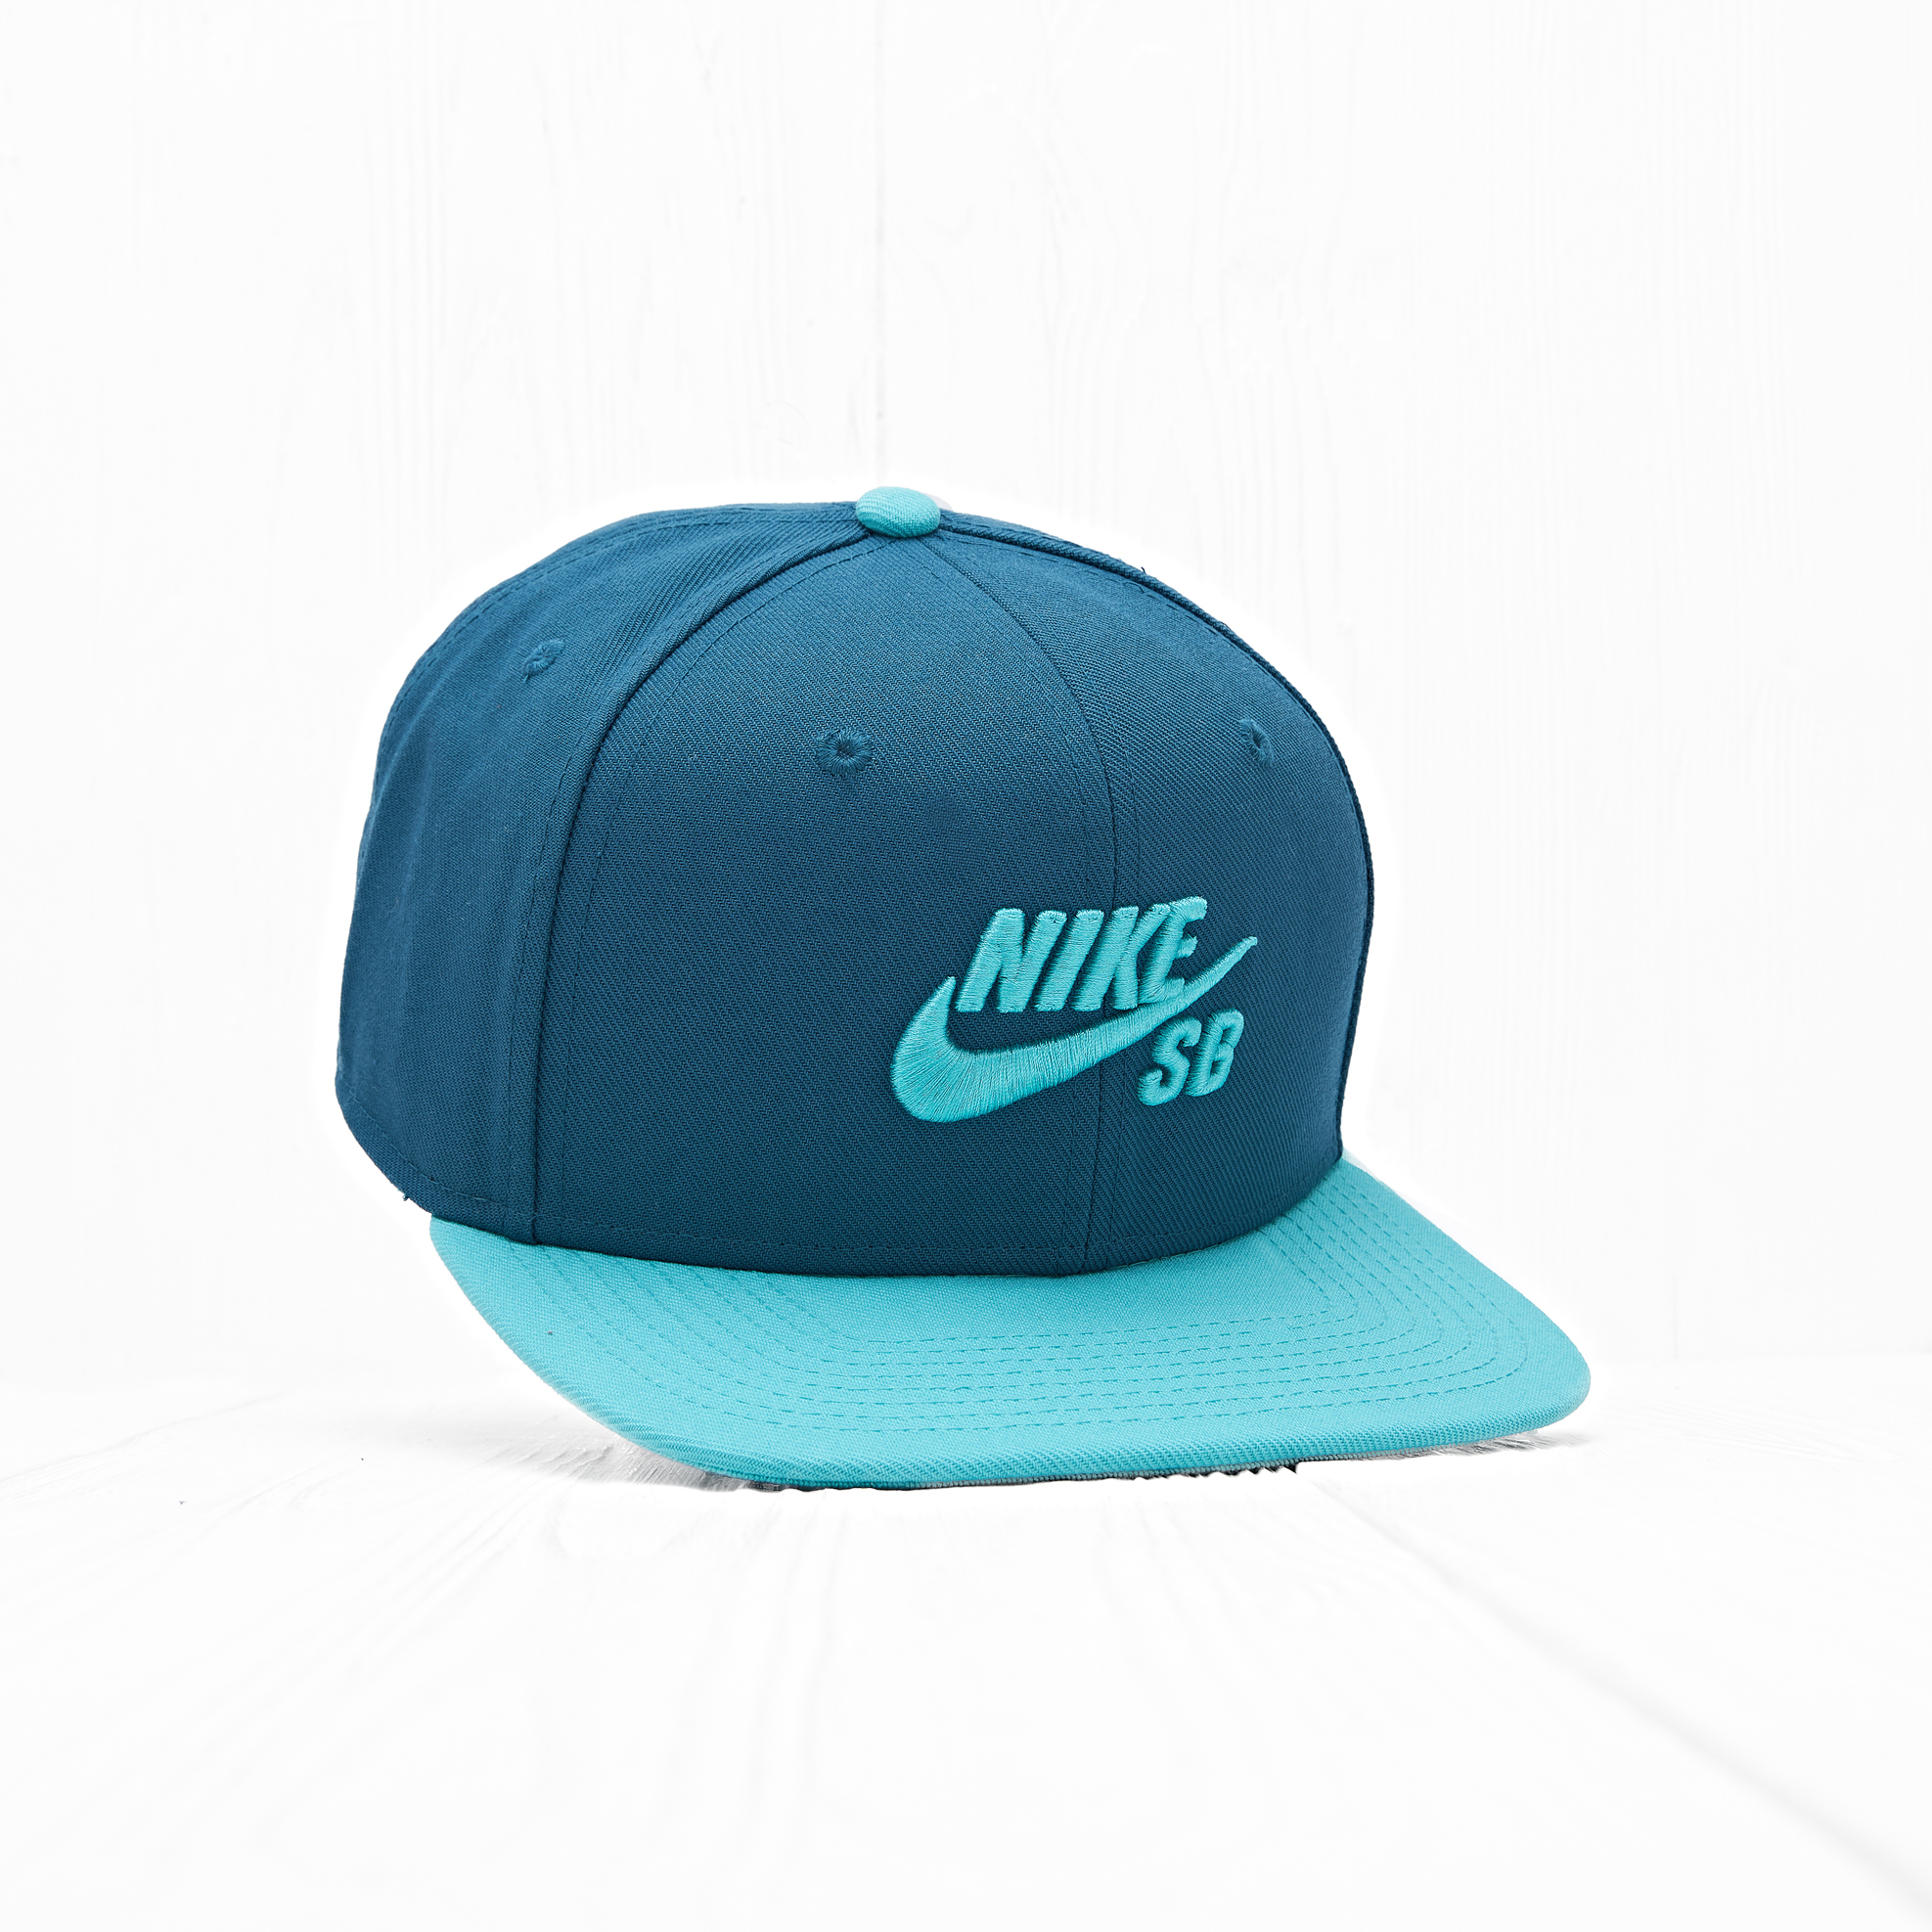 Бейсболка Nike SB ICON Teal/Light Retro/Black/Light Retro